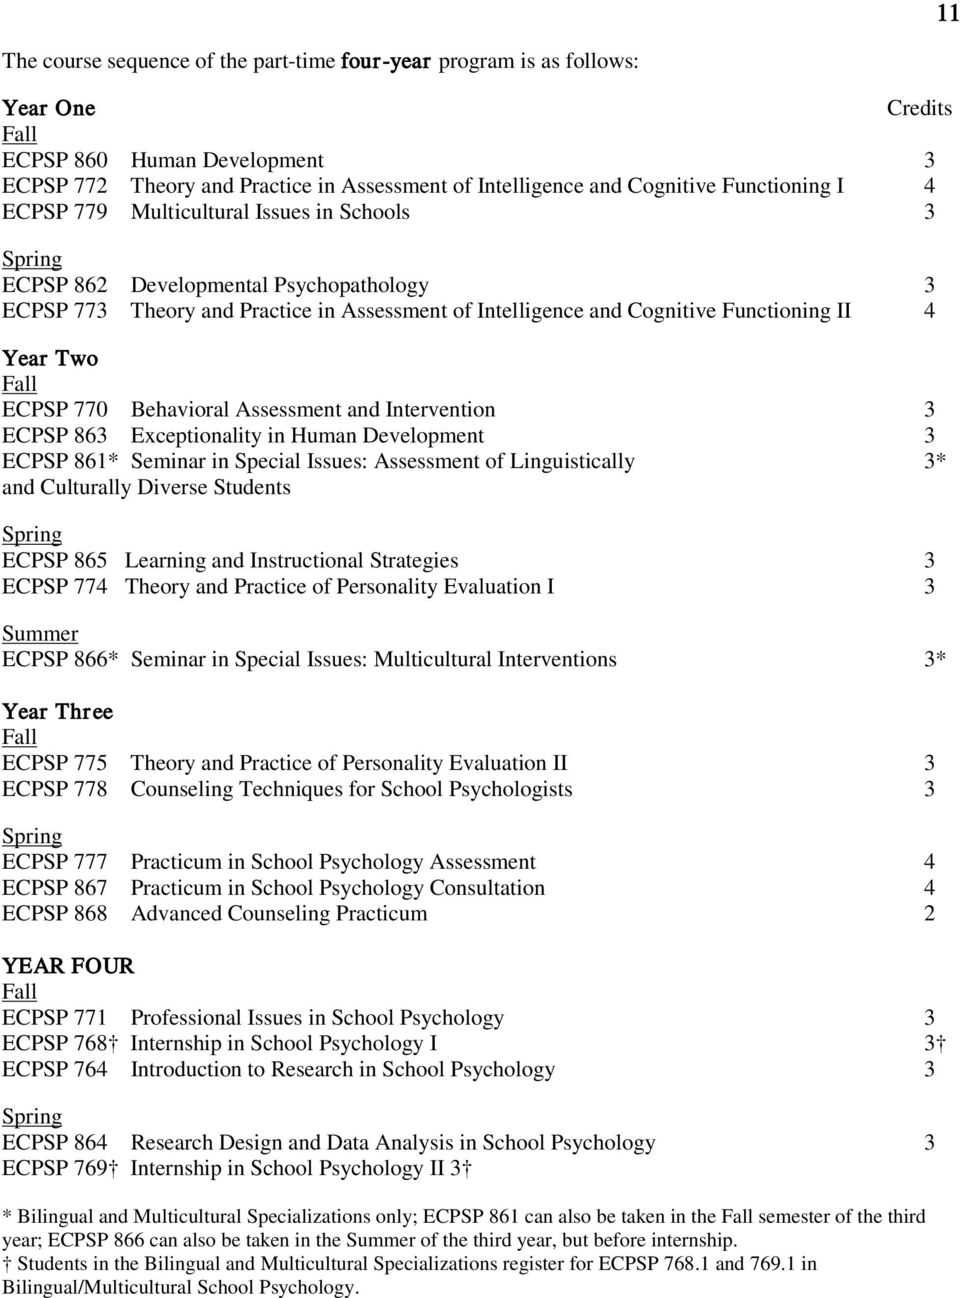 Year Two Fall ECPSP 770 Behavioral Assessment and Intervention 3 ECPSP 863 Exceptionality in Human Development 3 ECPSP 861* Seminar in Special Issues: Assessment of Linguistically 3* and Culturally